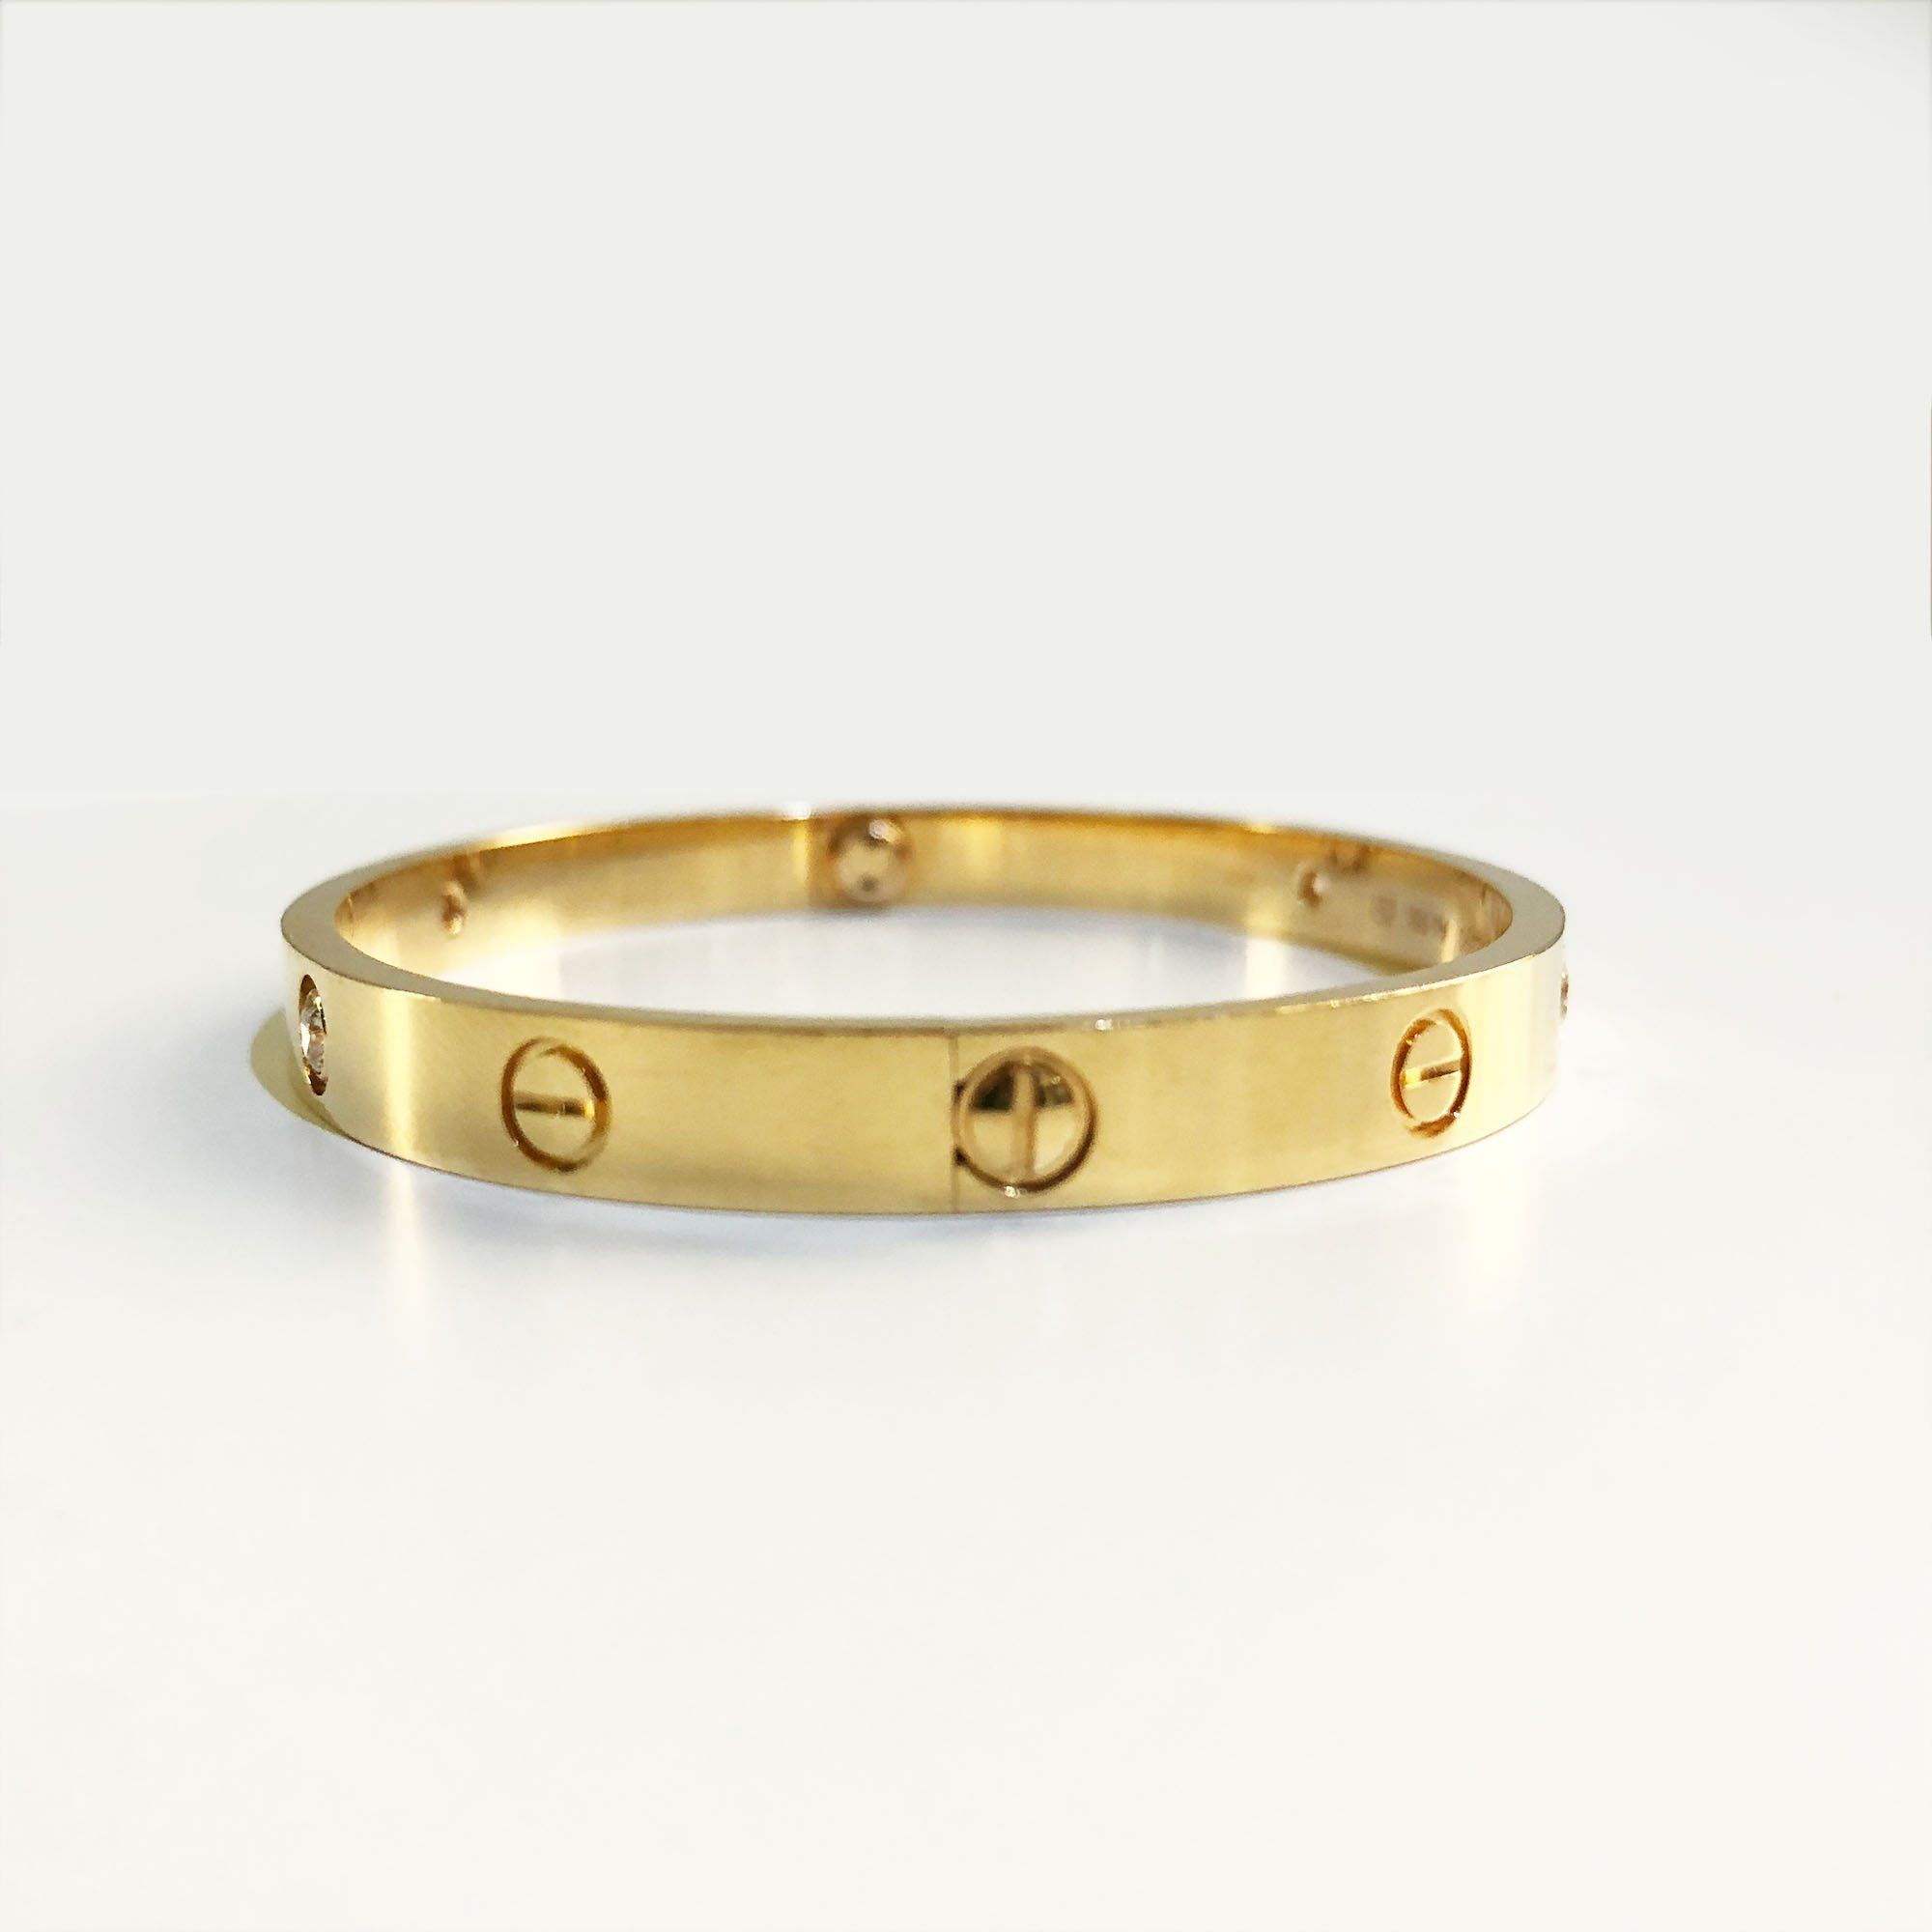 Cartier Love Bracelet In Yellow Gold With 4 Diamonds